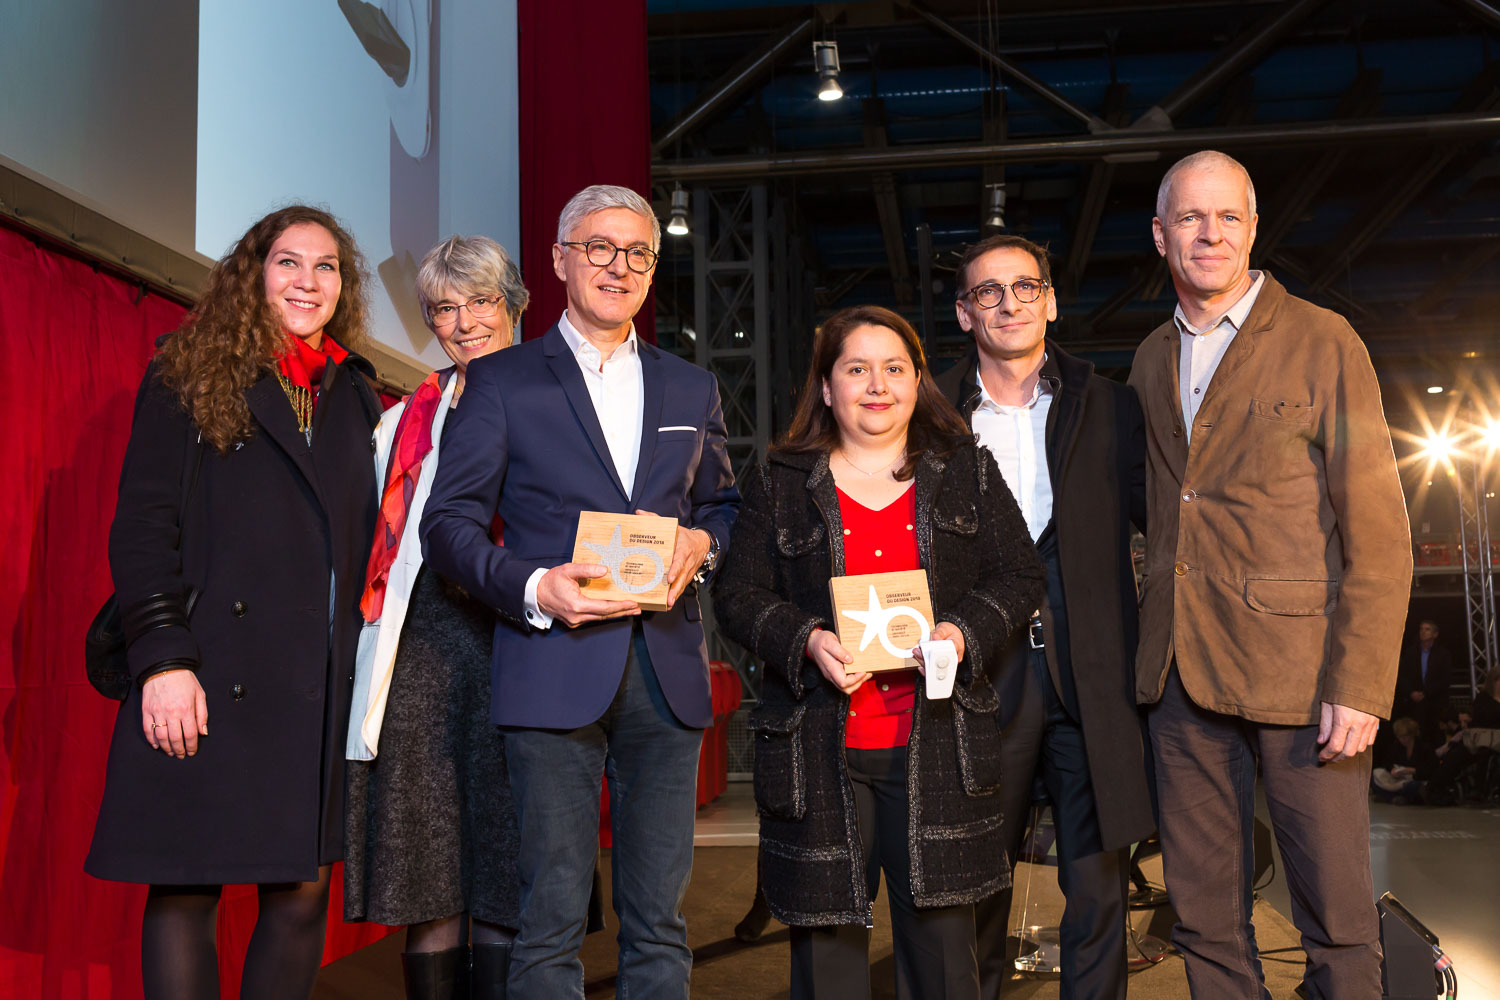 Observeur du design 2018 ceremony at Centre Pompidou, Paris © Franck Parisot